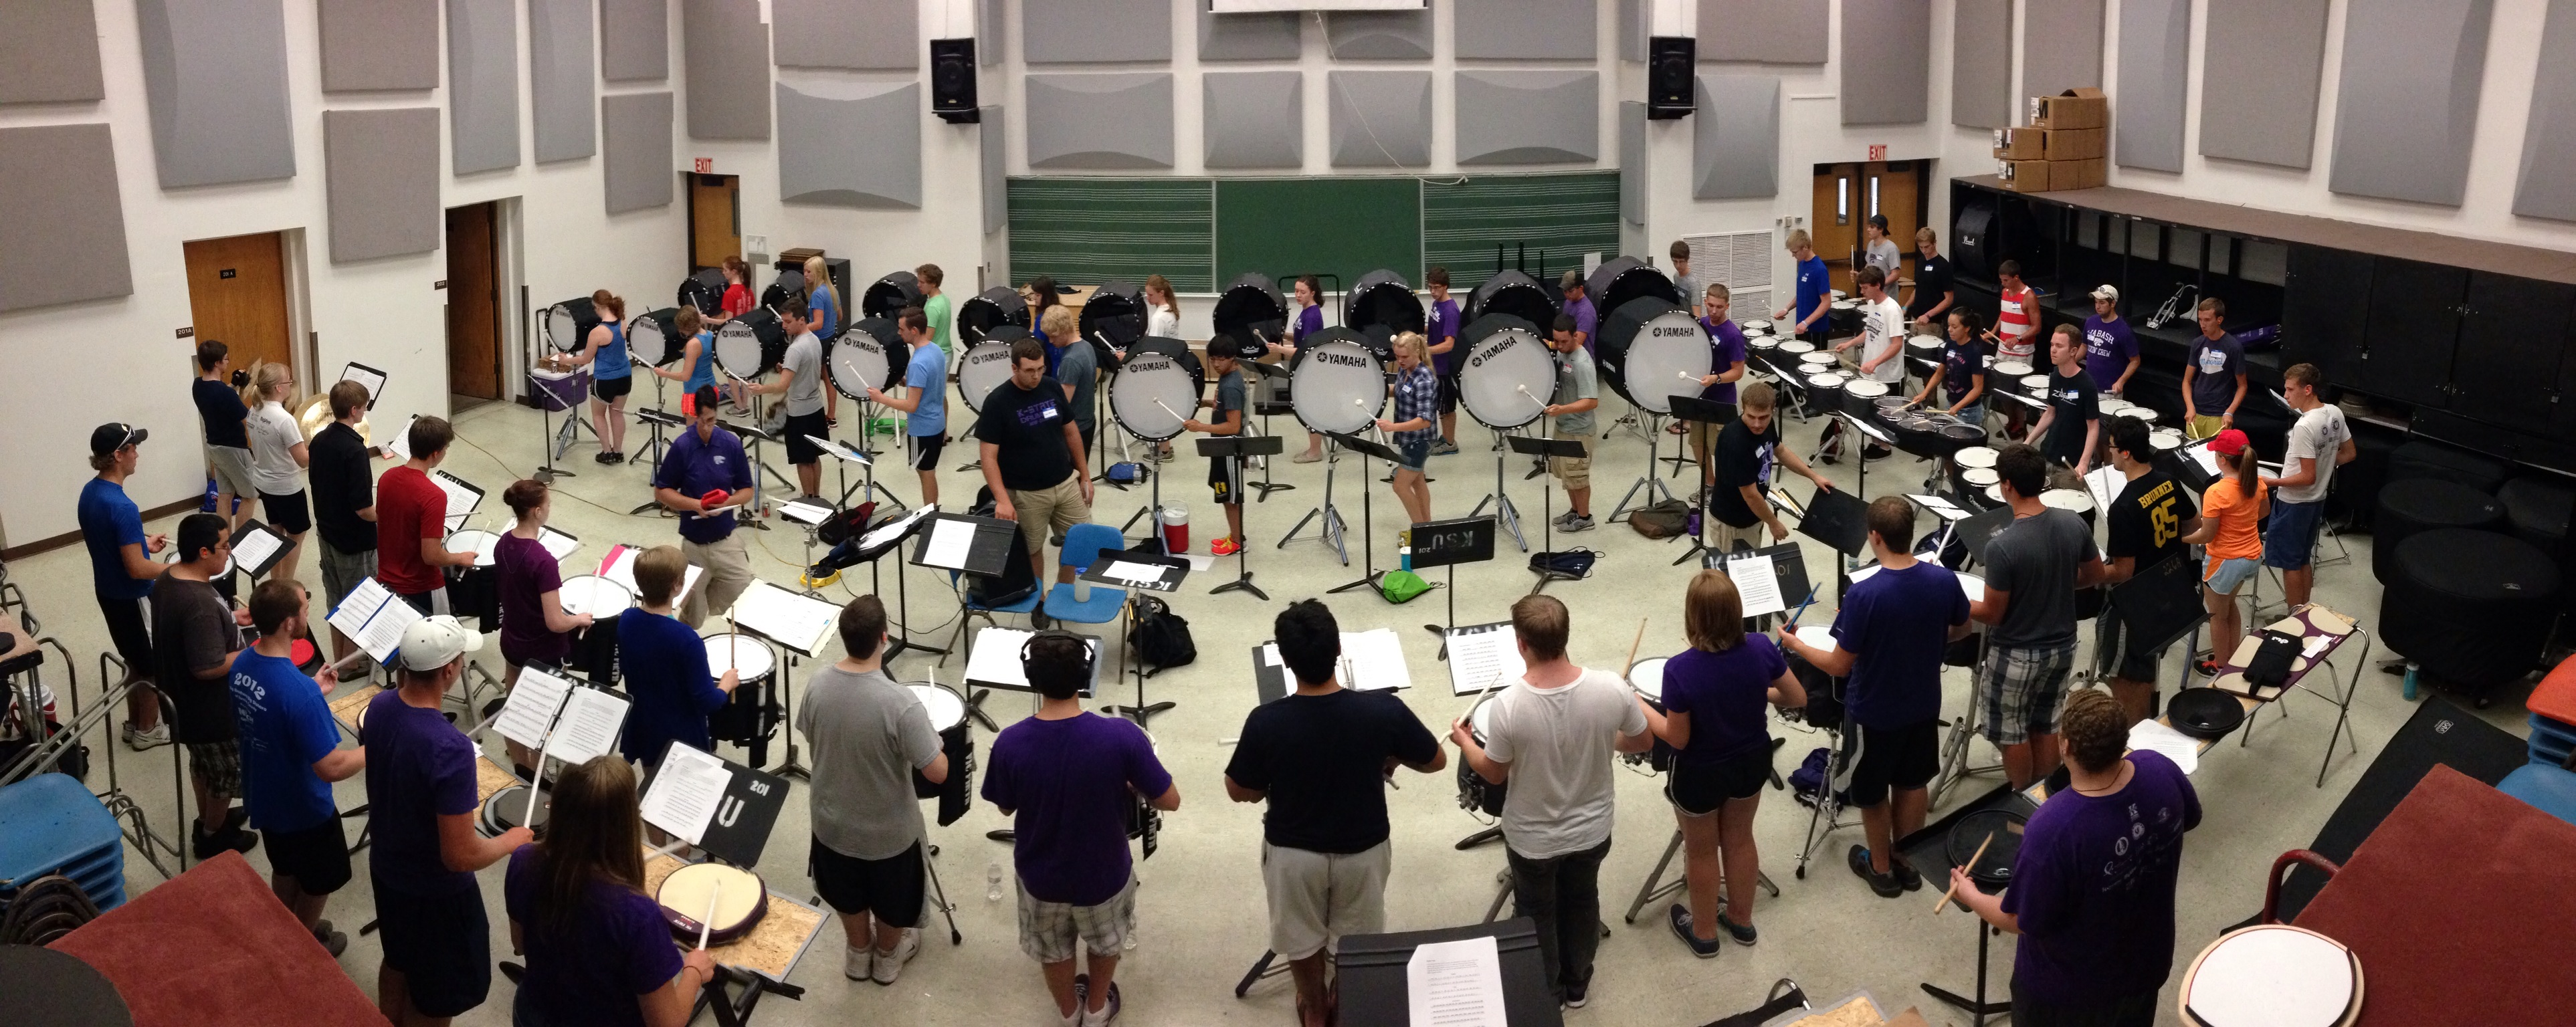 KSU Drumline Mini-Camp 1